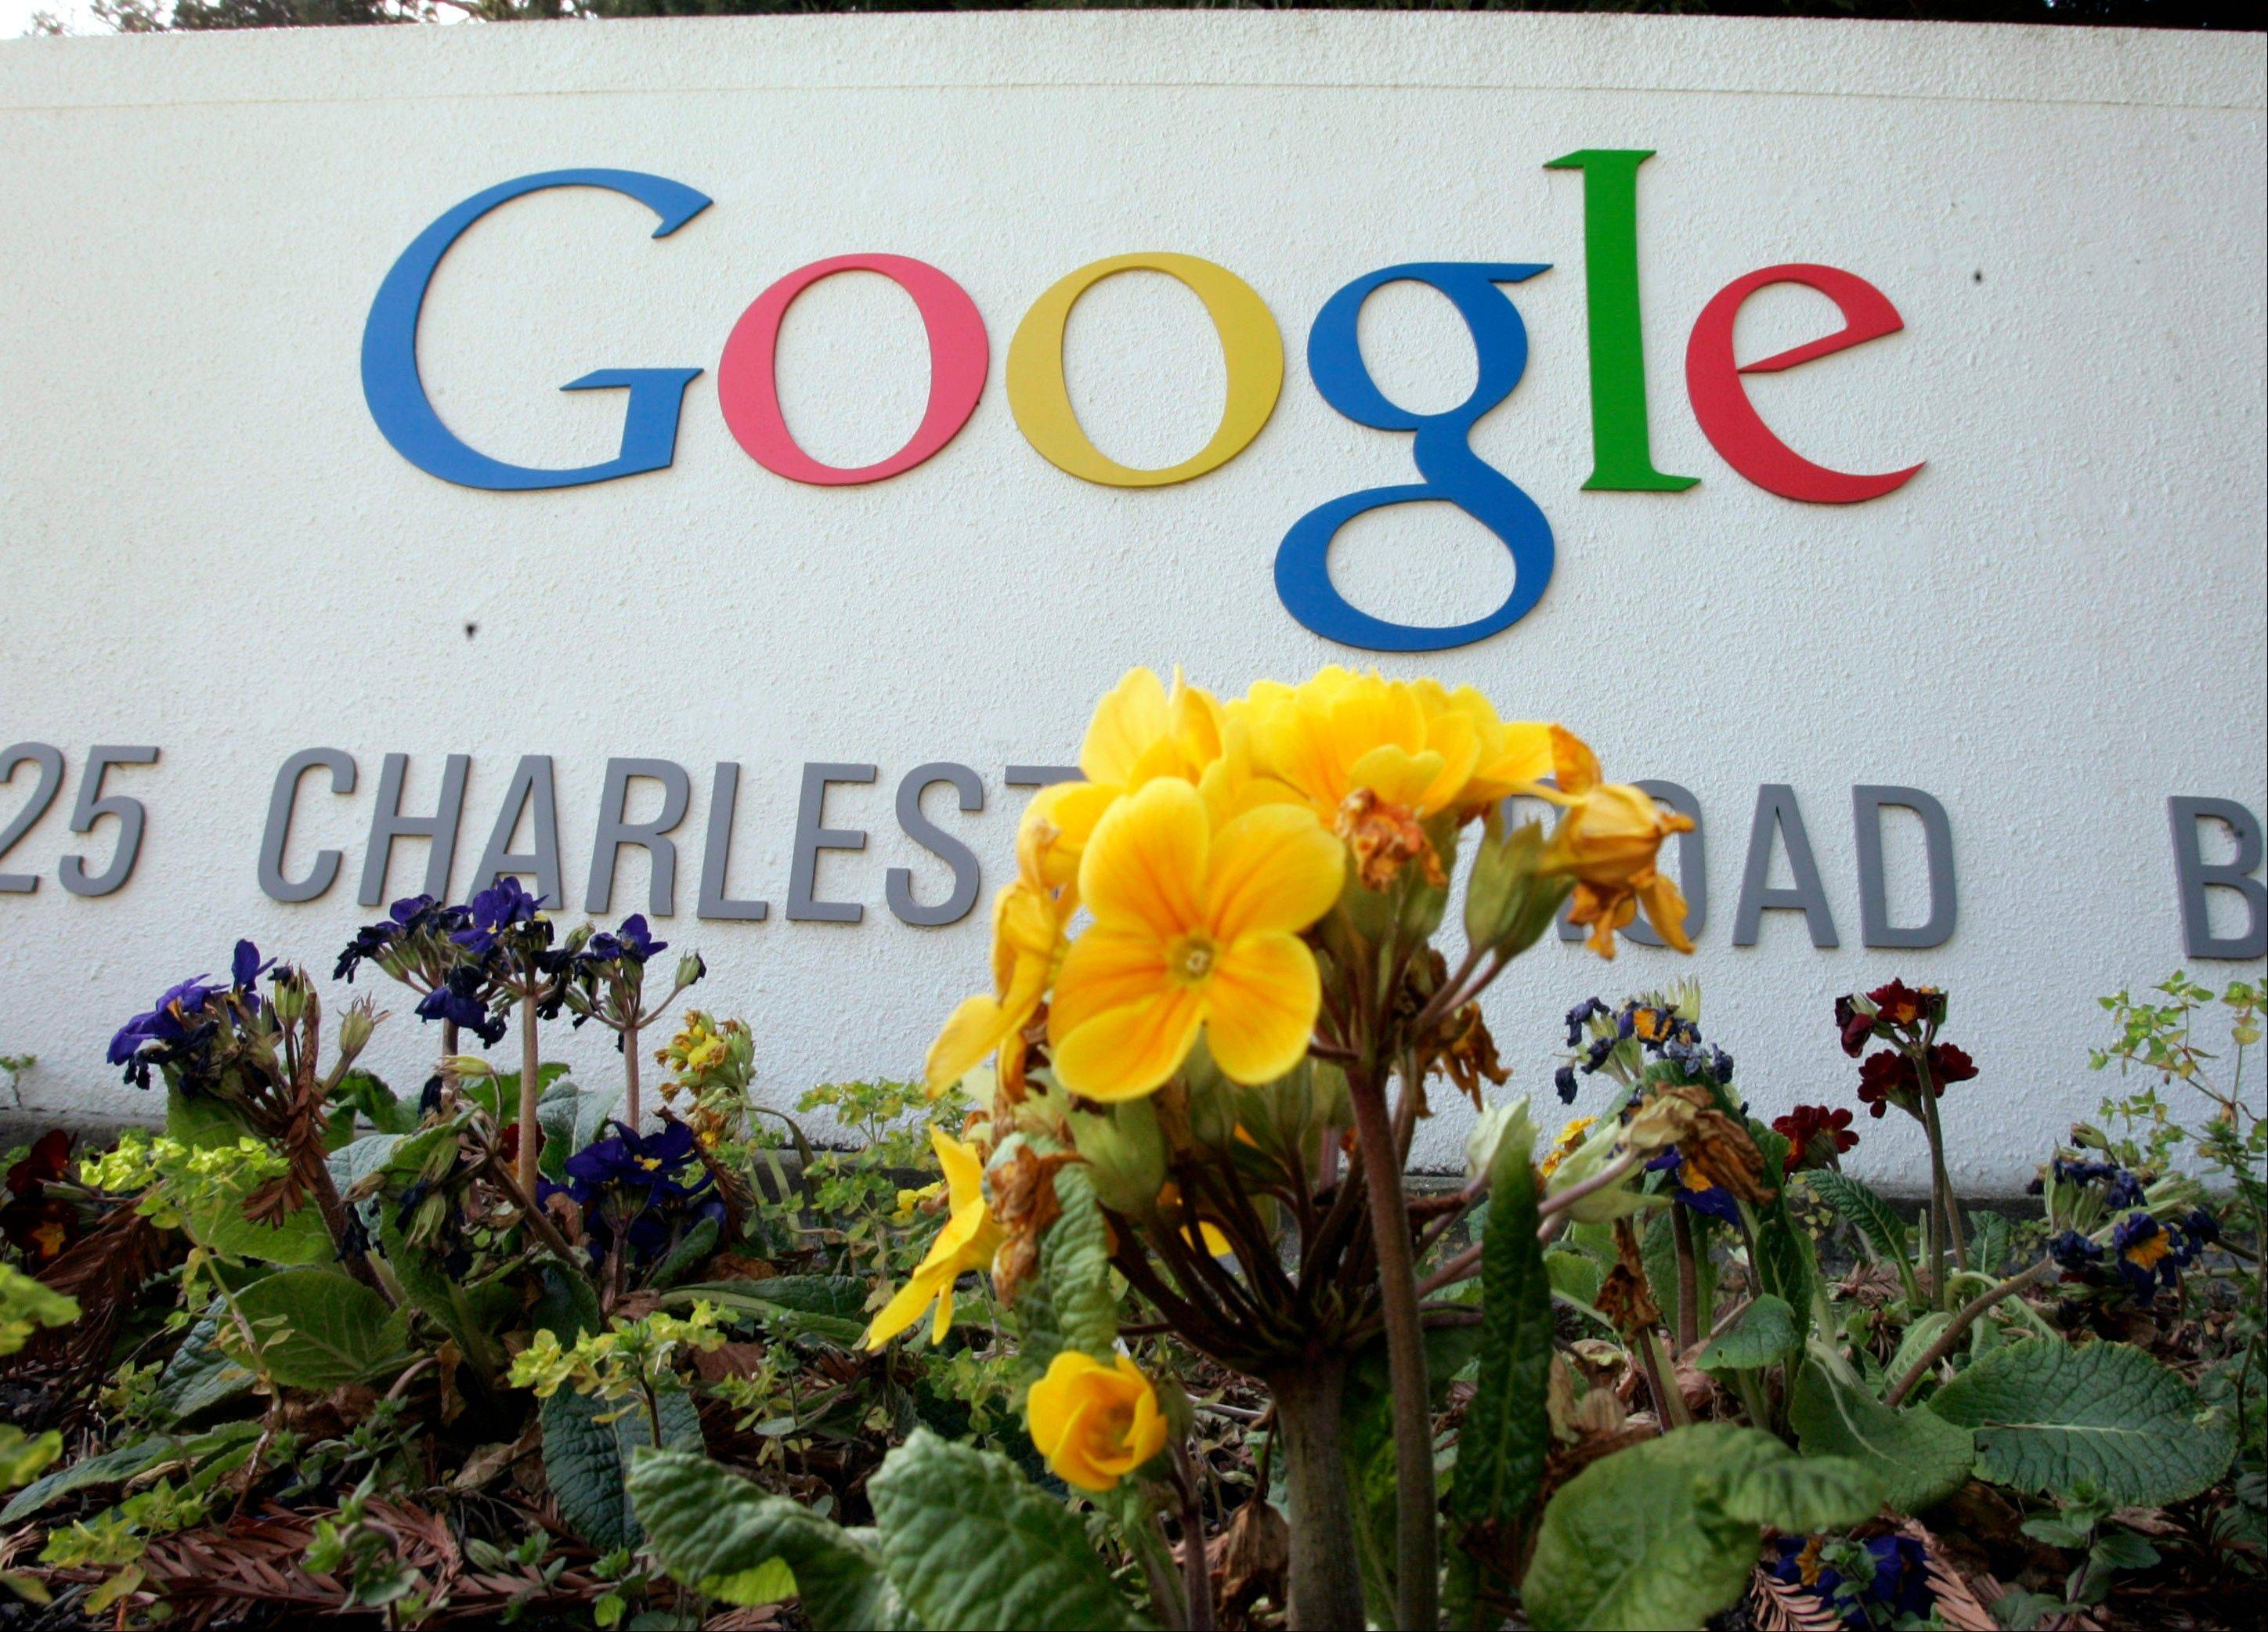 Google's shareholders haveo approved the company's plan to issue a new class of stock.